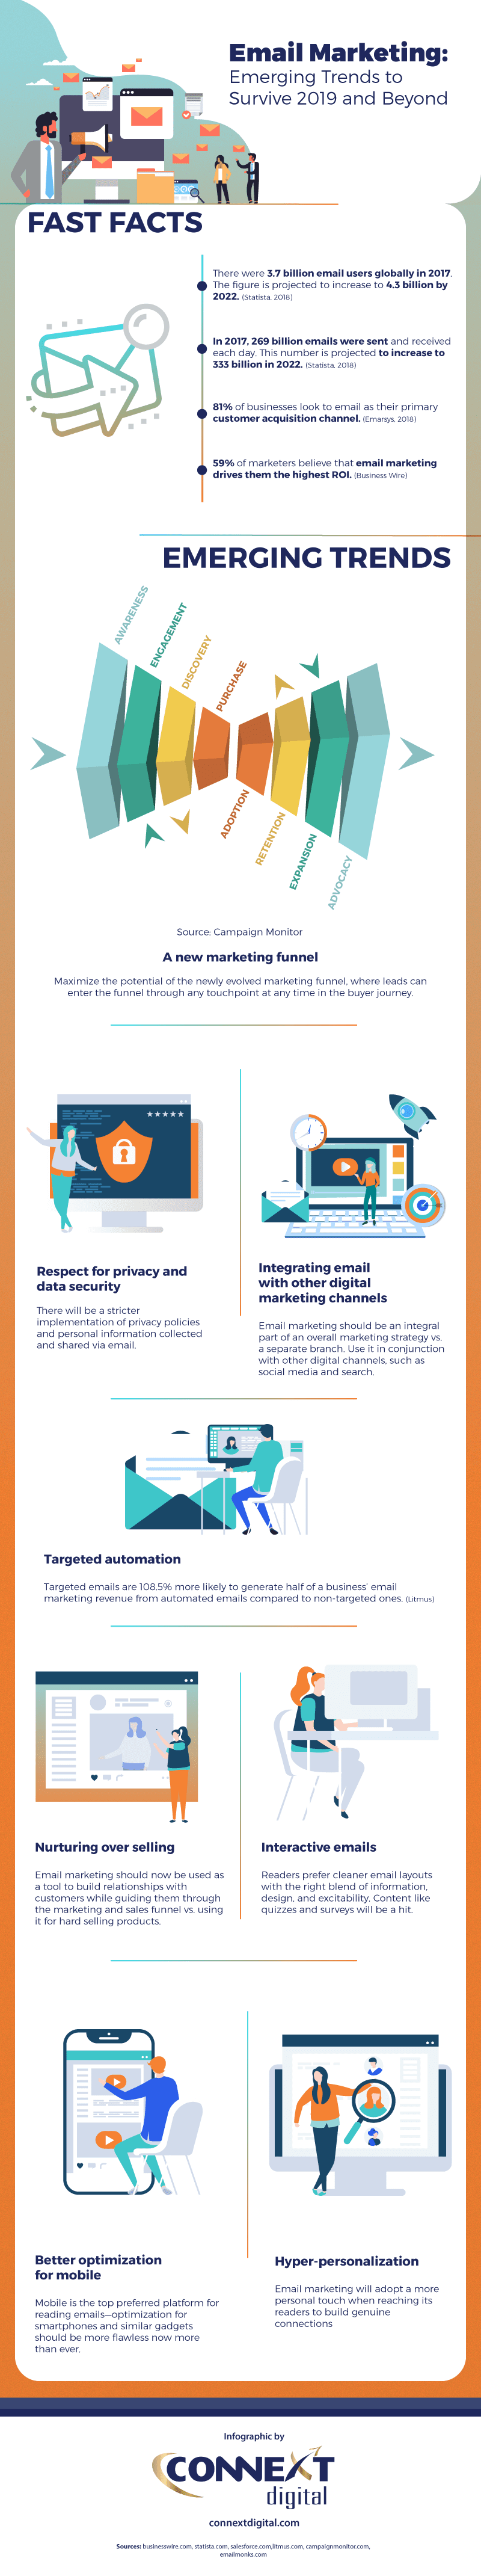 Infographic Email Marketing Emerging Trends to Survive 2019 and Beyond 1